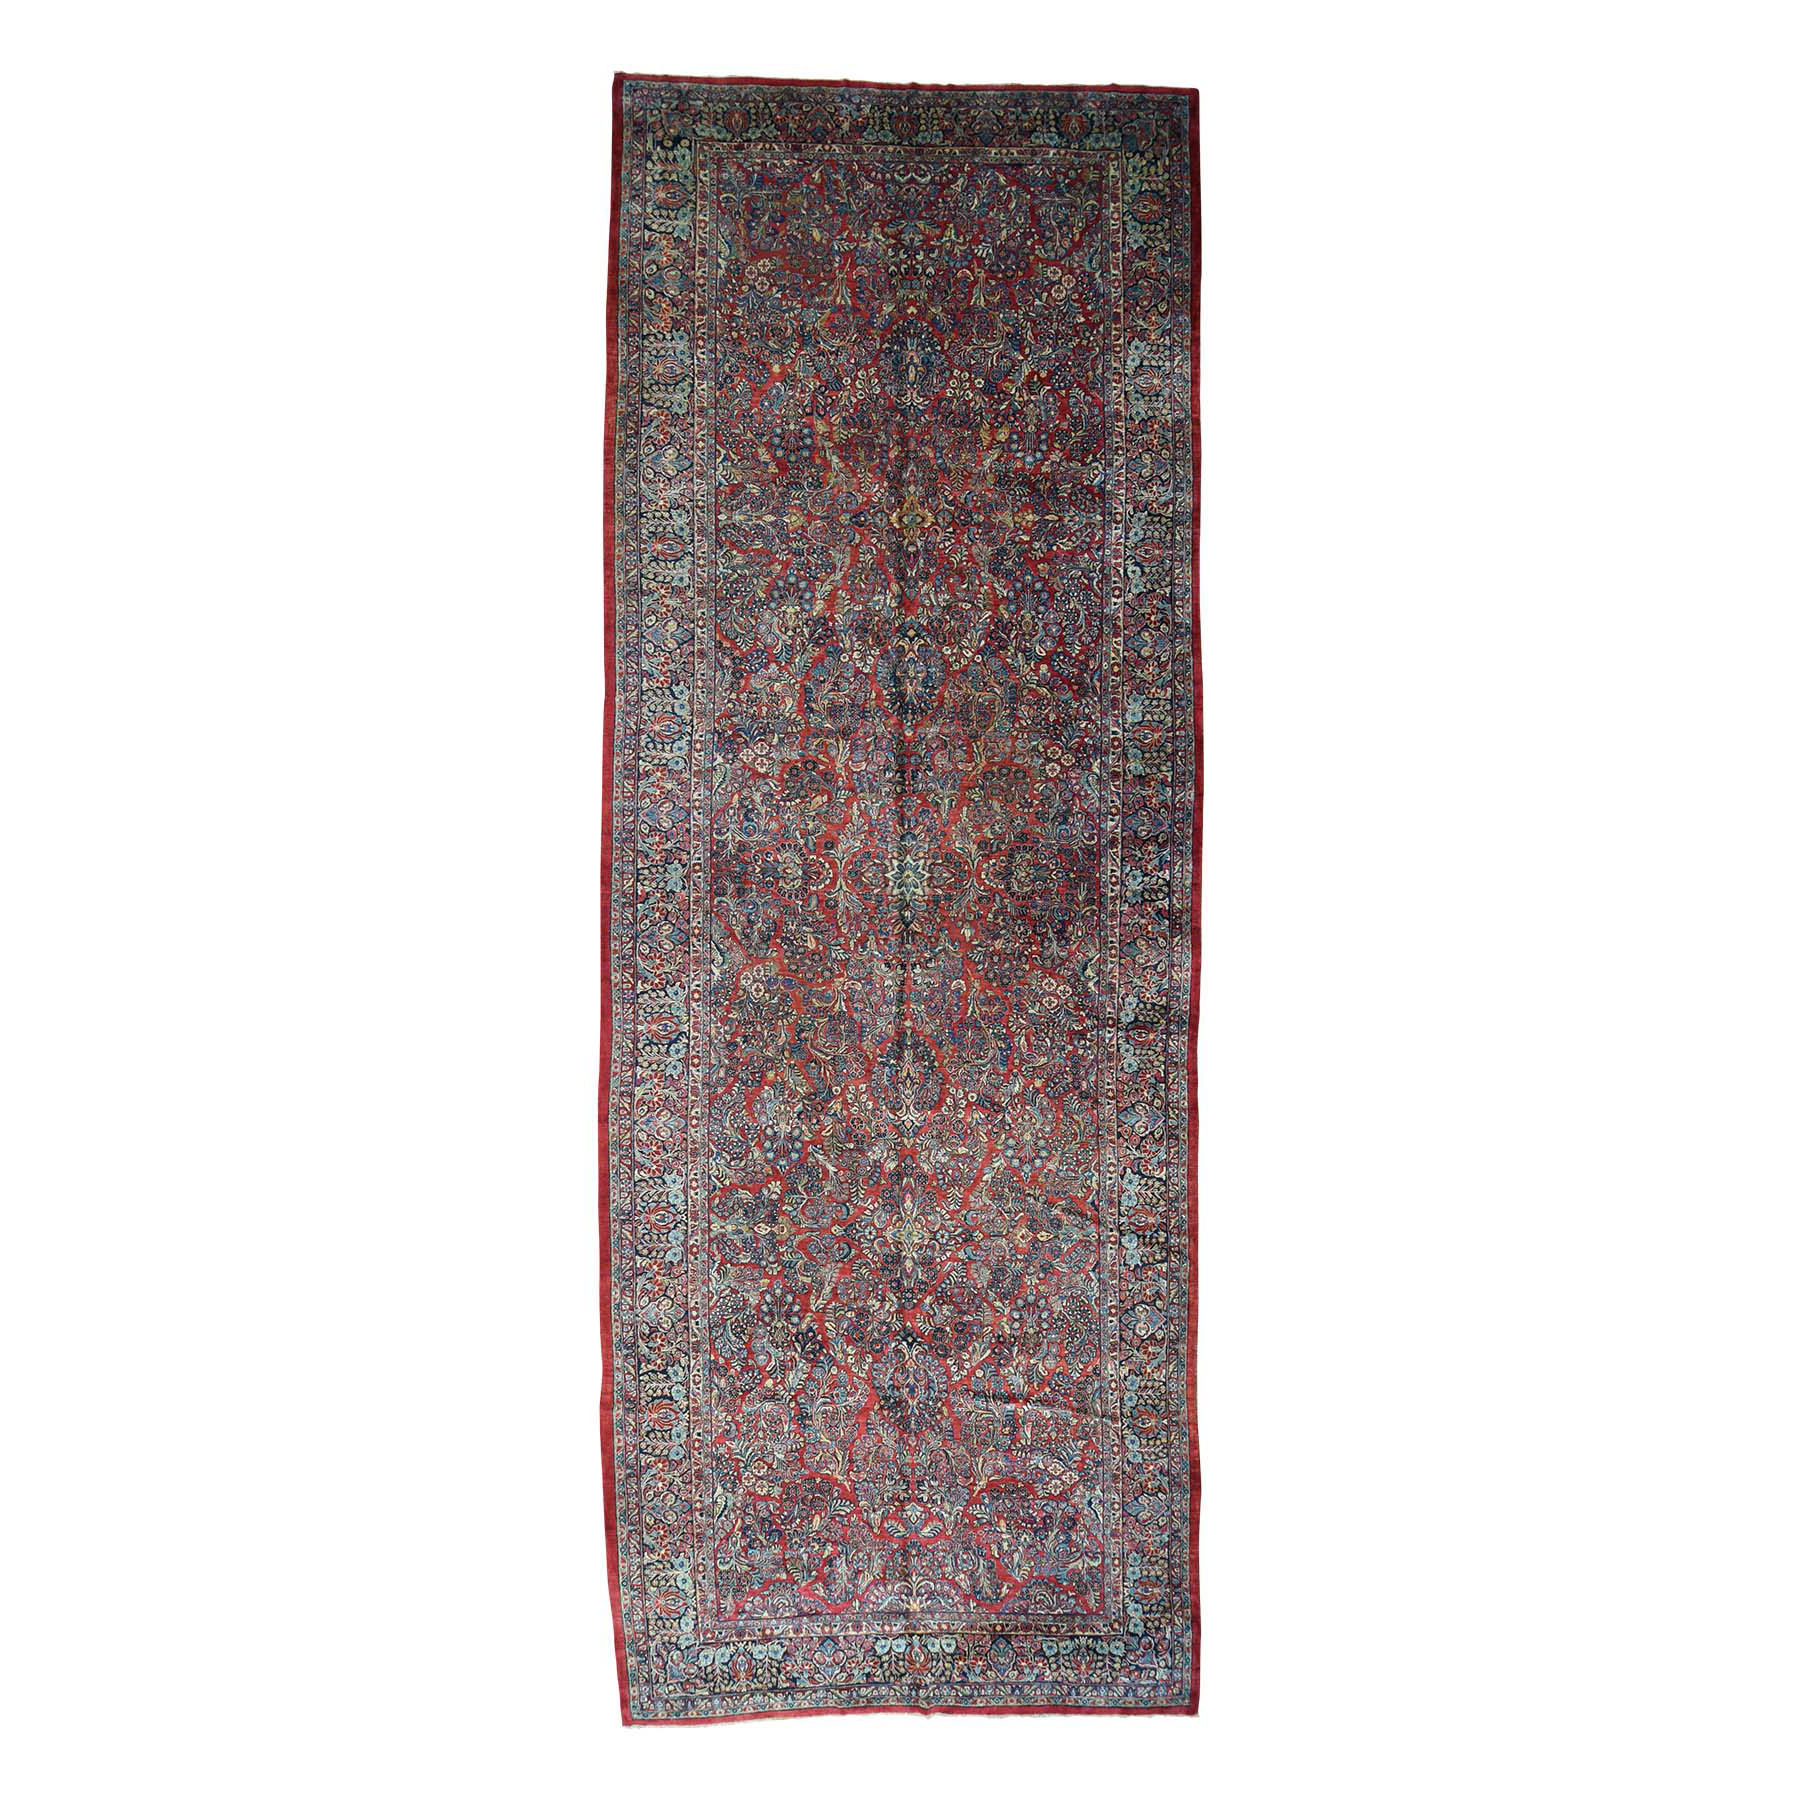 Antique Collection Hand Knotted Red Rug No: 164264